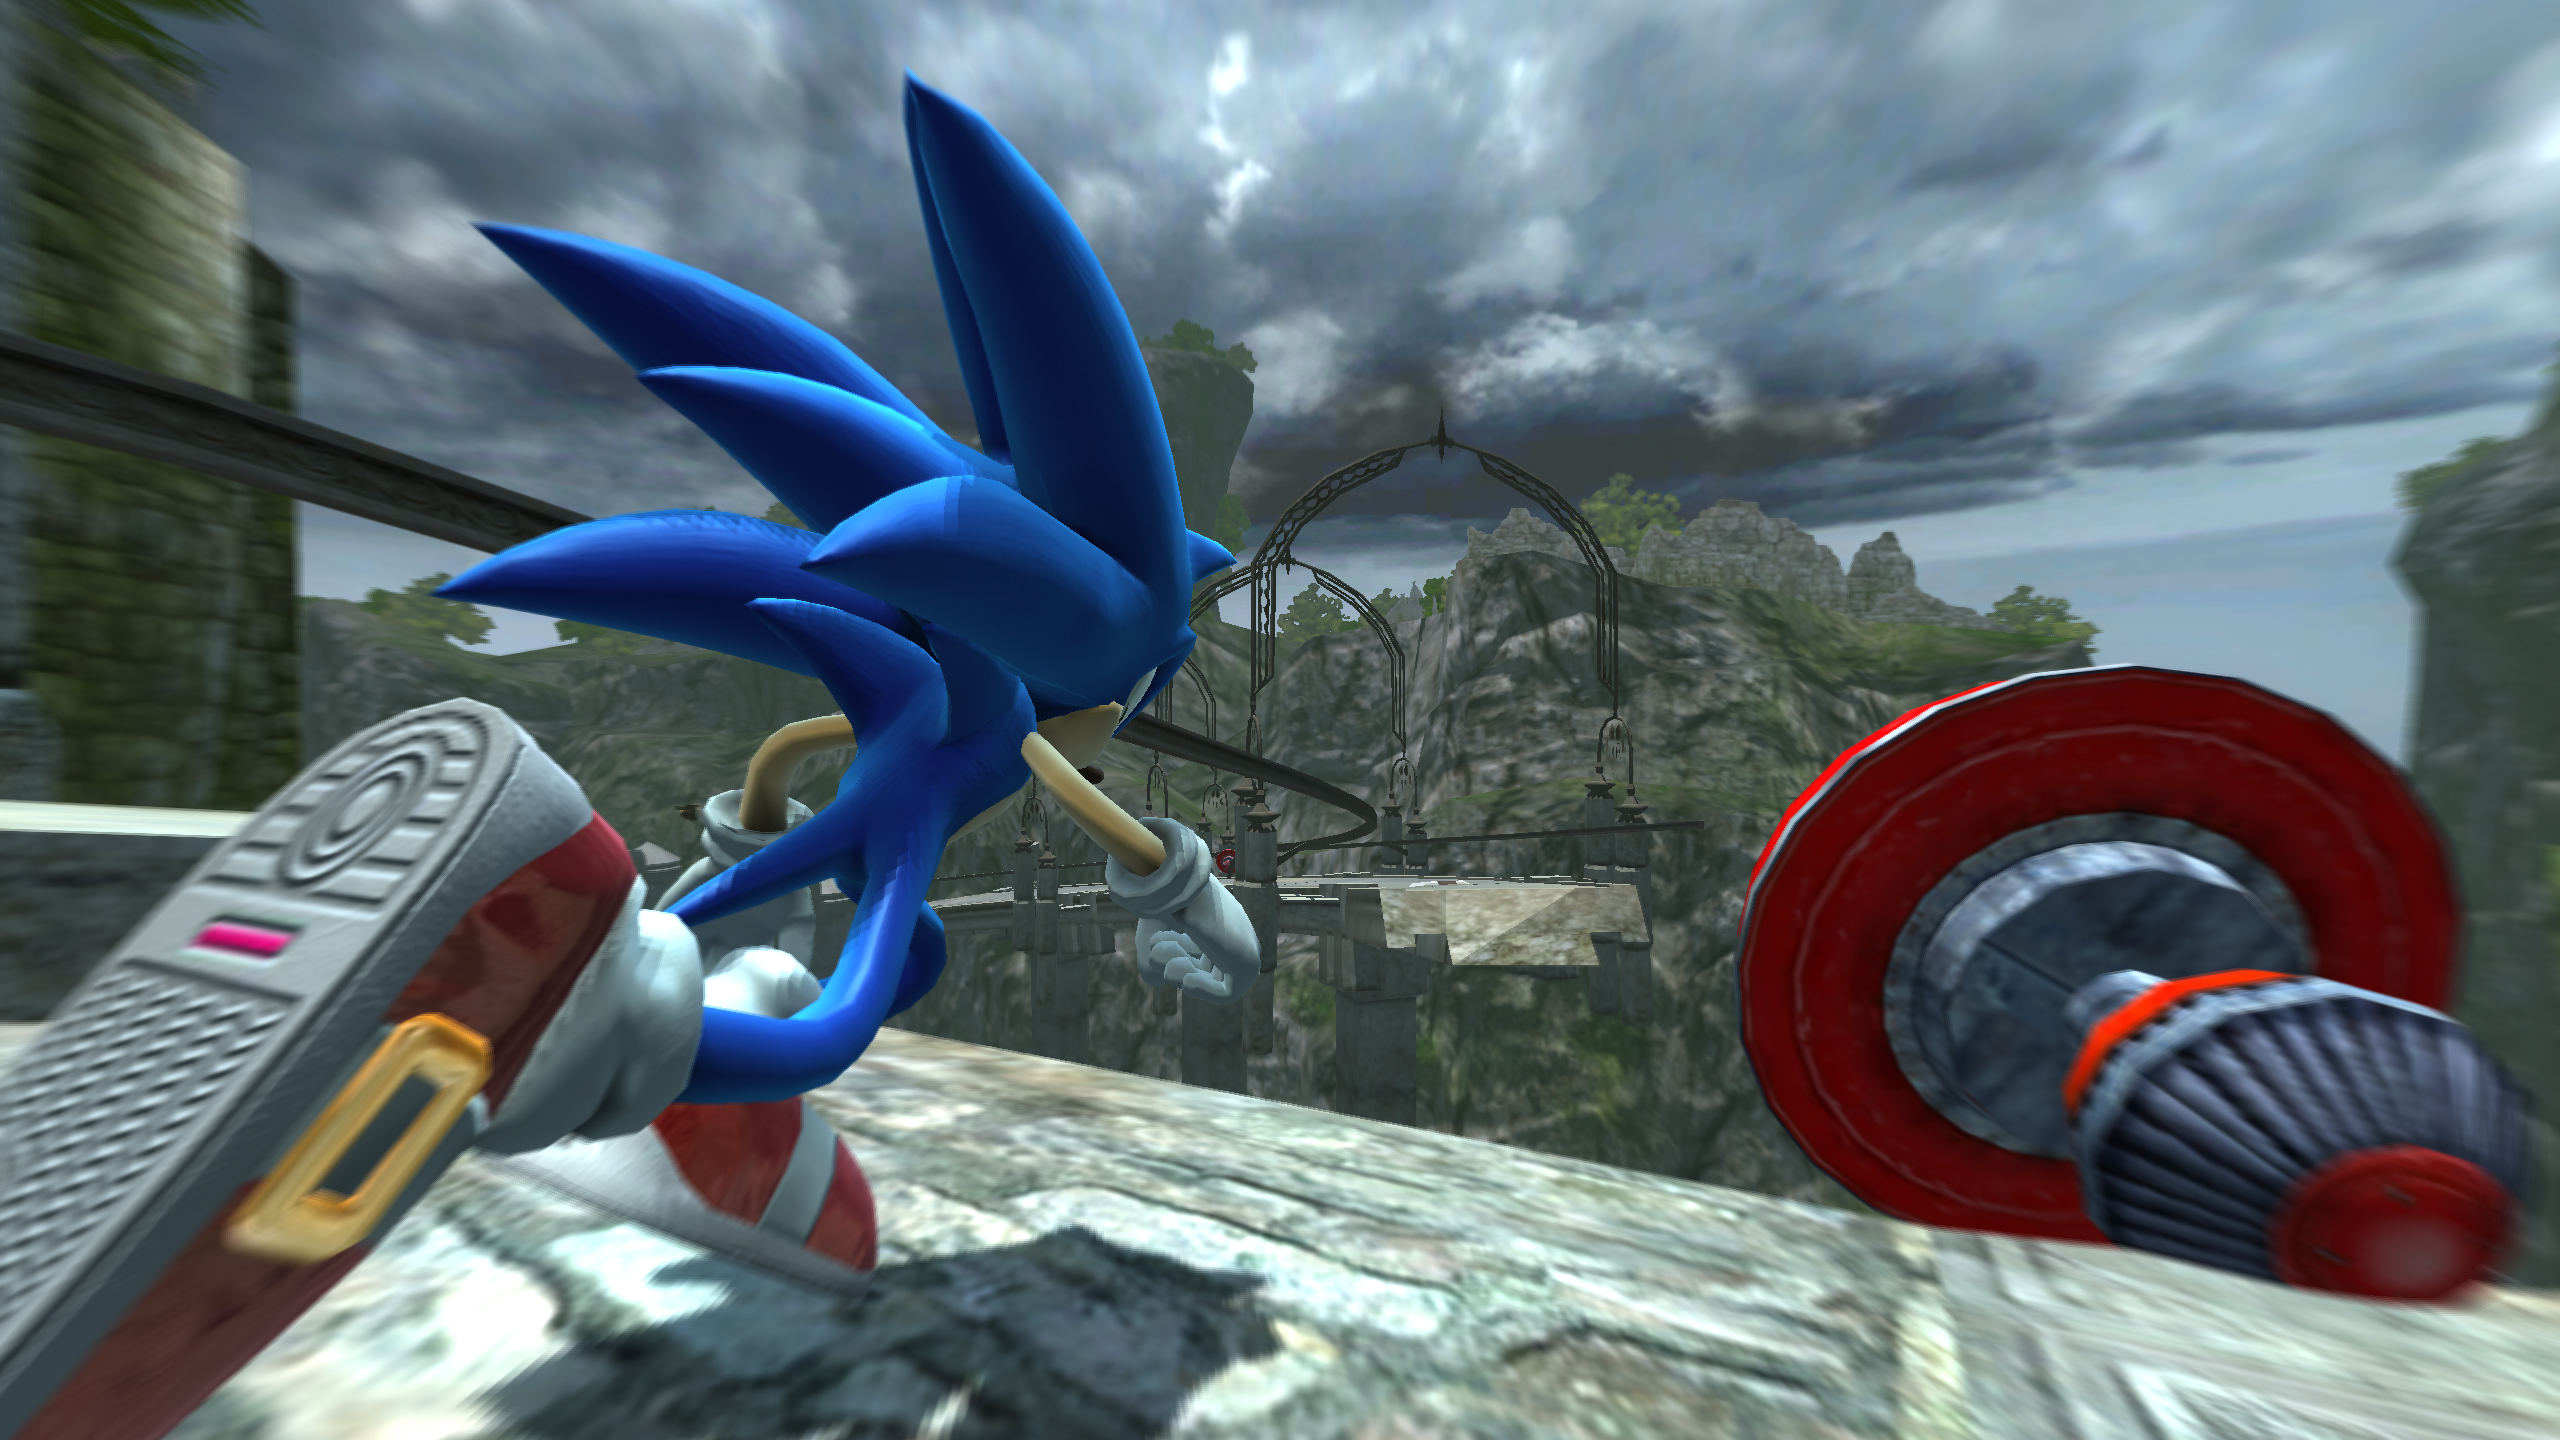 File:Sonic06screen9.jpg